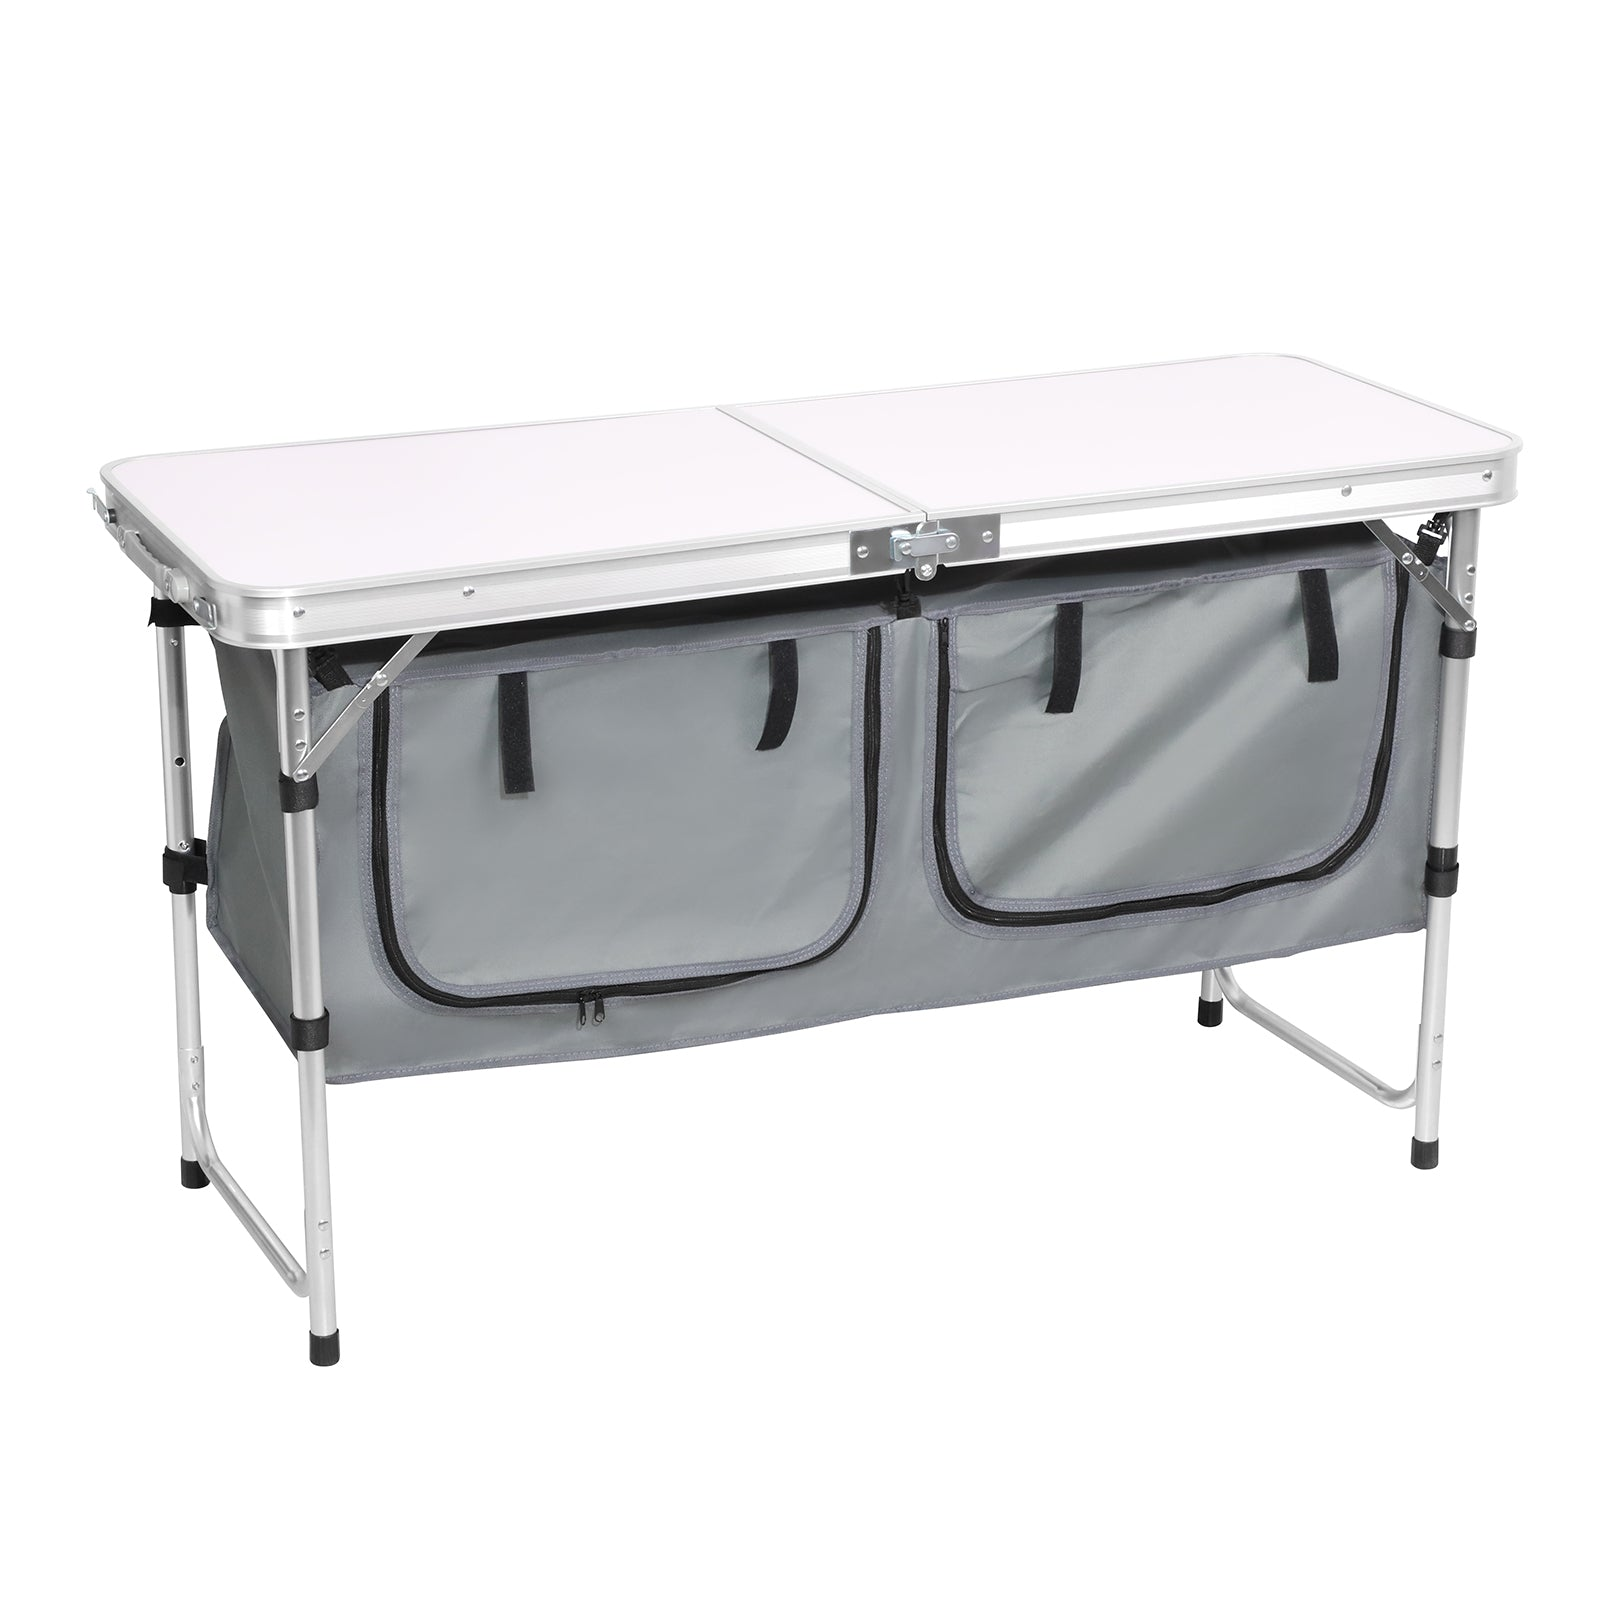 Dark Gray Folding Camping Picnic Table w/Extended Panel, Compact Aluminum Lightweight Picnic Table